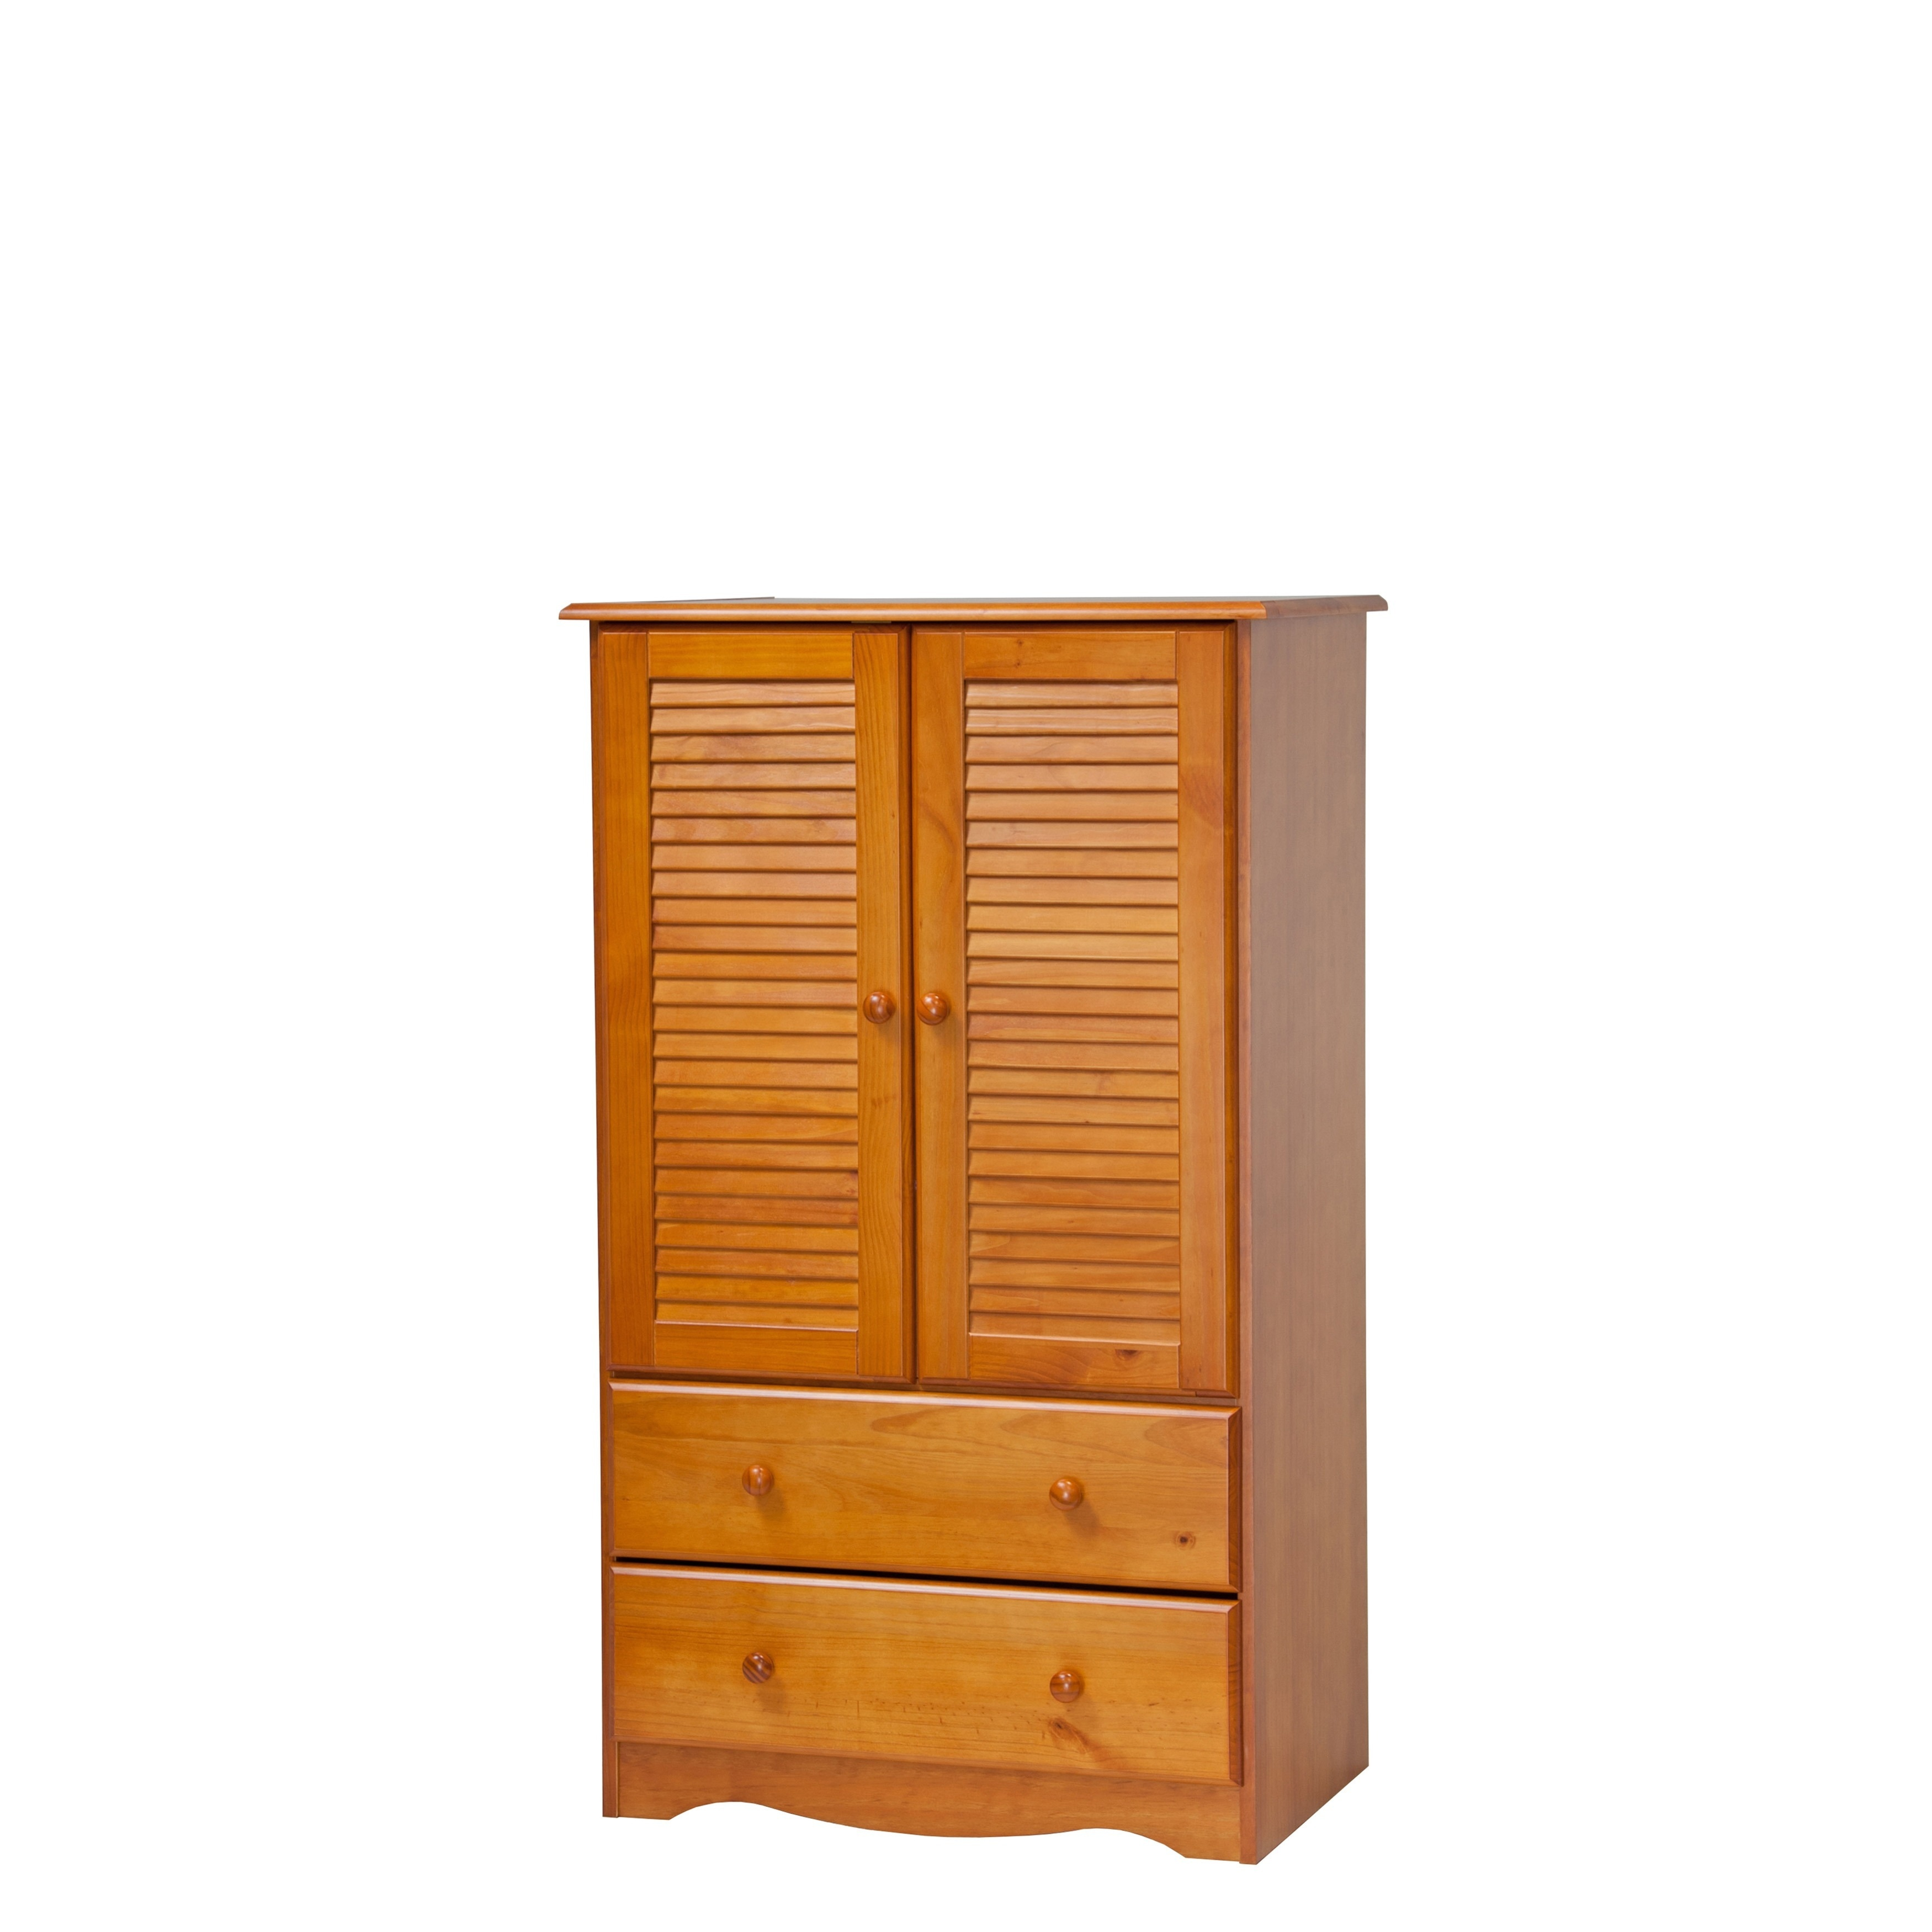 Merveilleux Palace Imports Petite Solid Wood Armoire   Free Shipping Today    Overstock.com   16692366